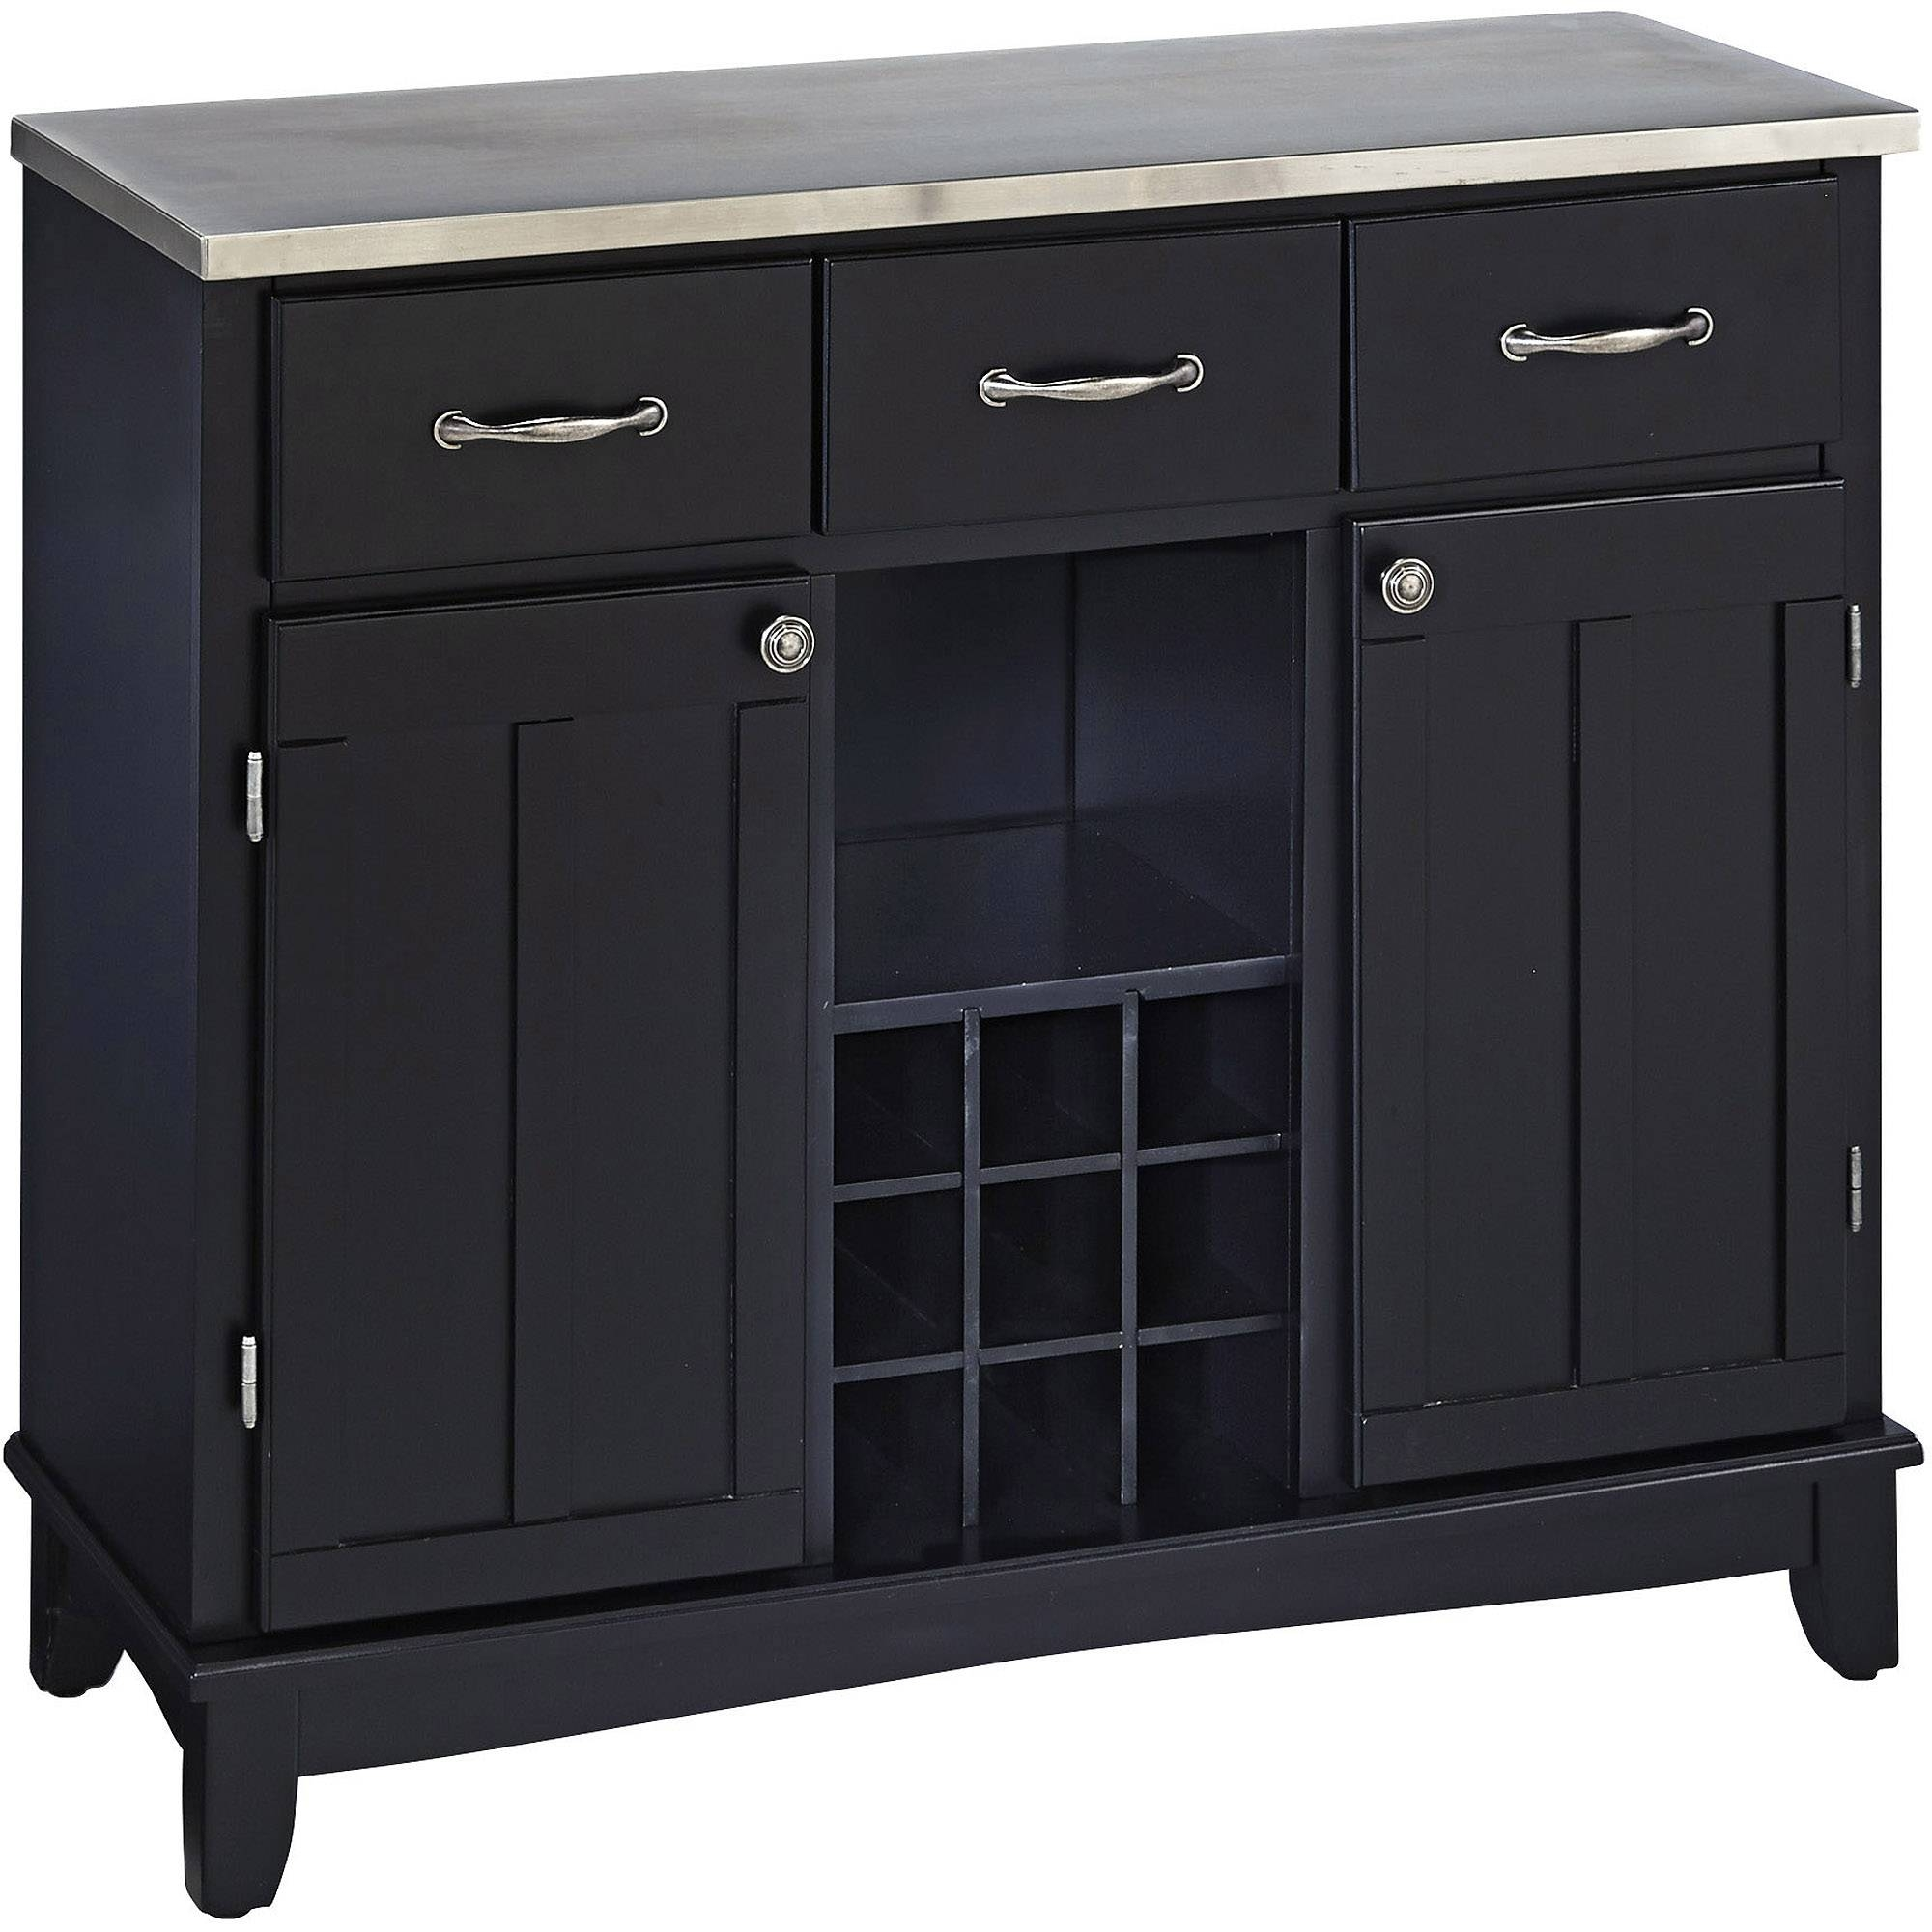 China Cabinet & Buffet Furniture : Kitchen & Dining Furniture regarding Black and Walnut Sideboards (Image 8 of 30)